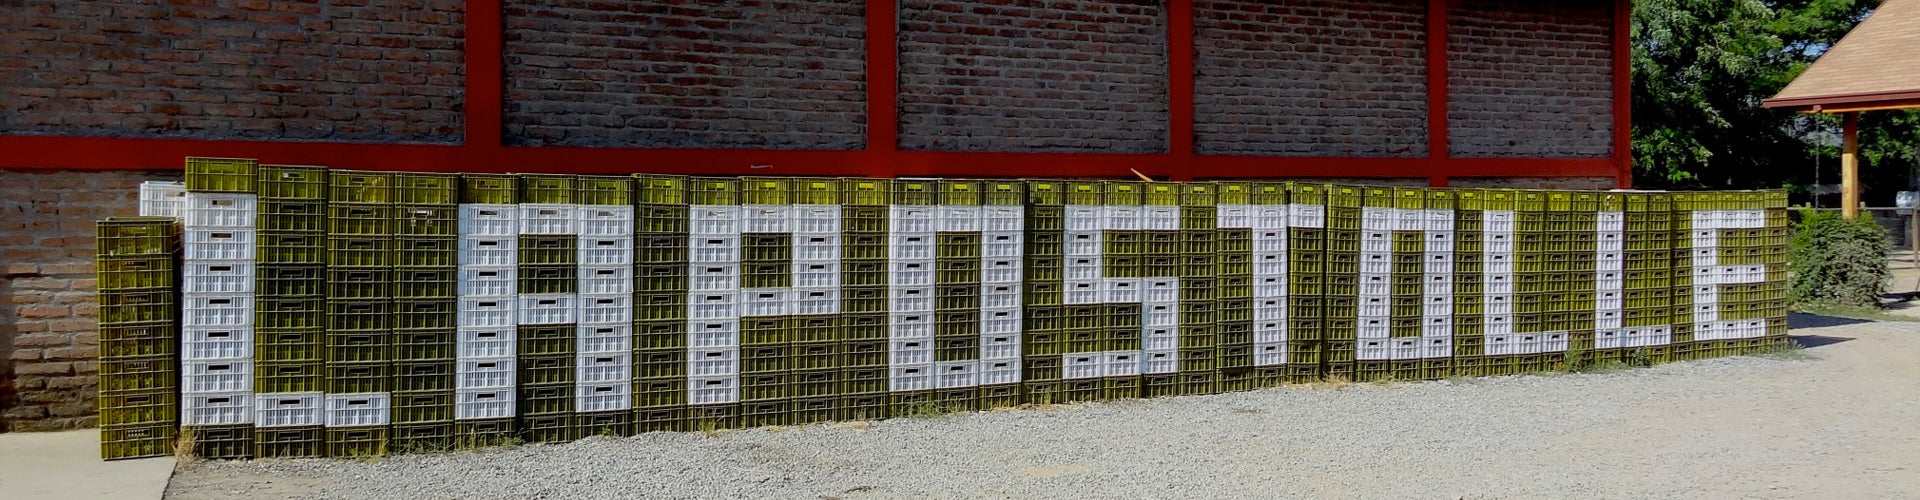 Grape harvest crates stacked in line spelling the word Lapostolle